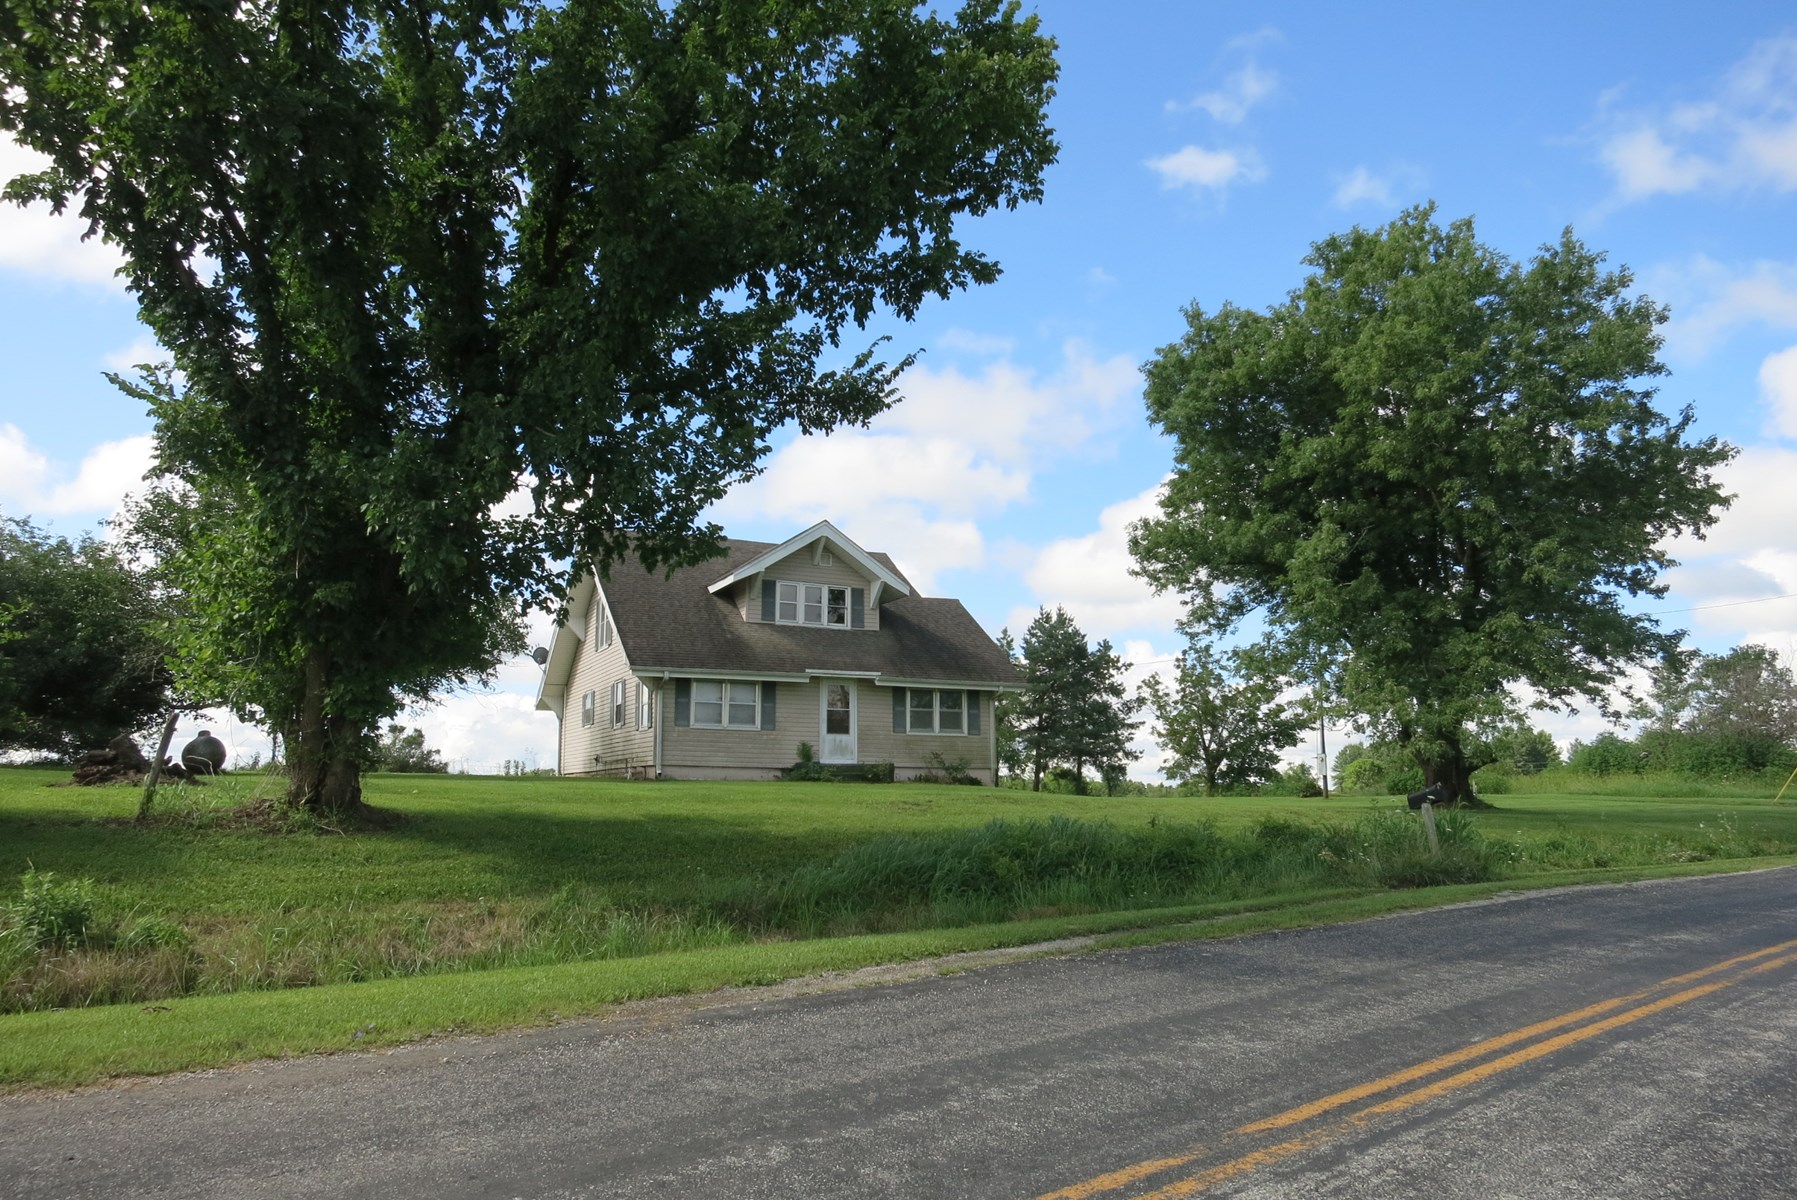 Home On 4 Country Acres in Northwest Missouri